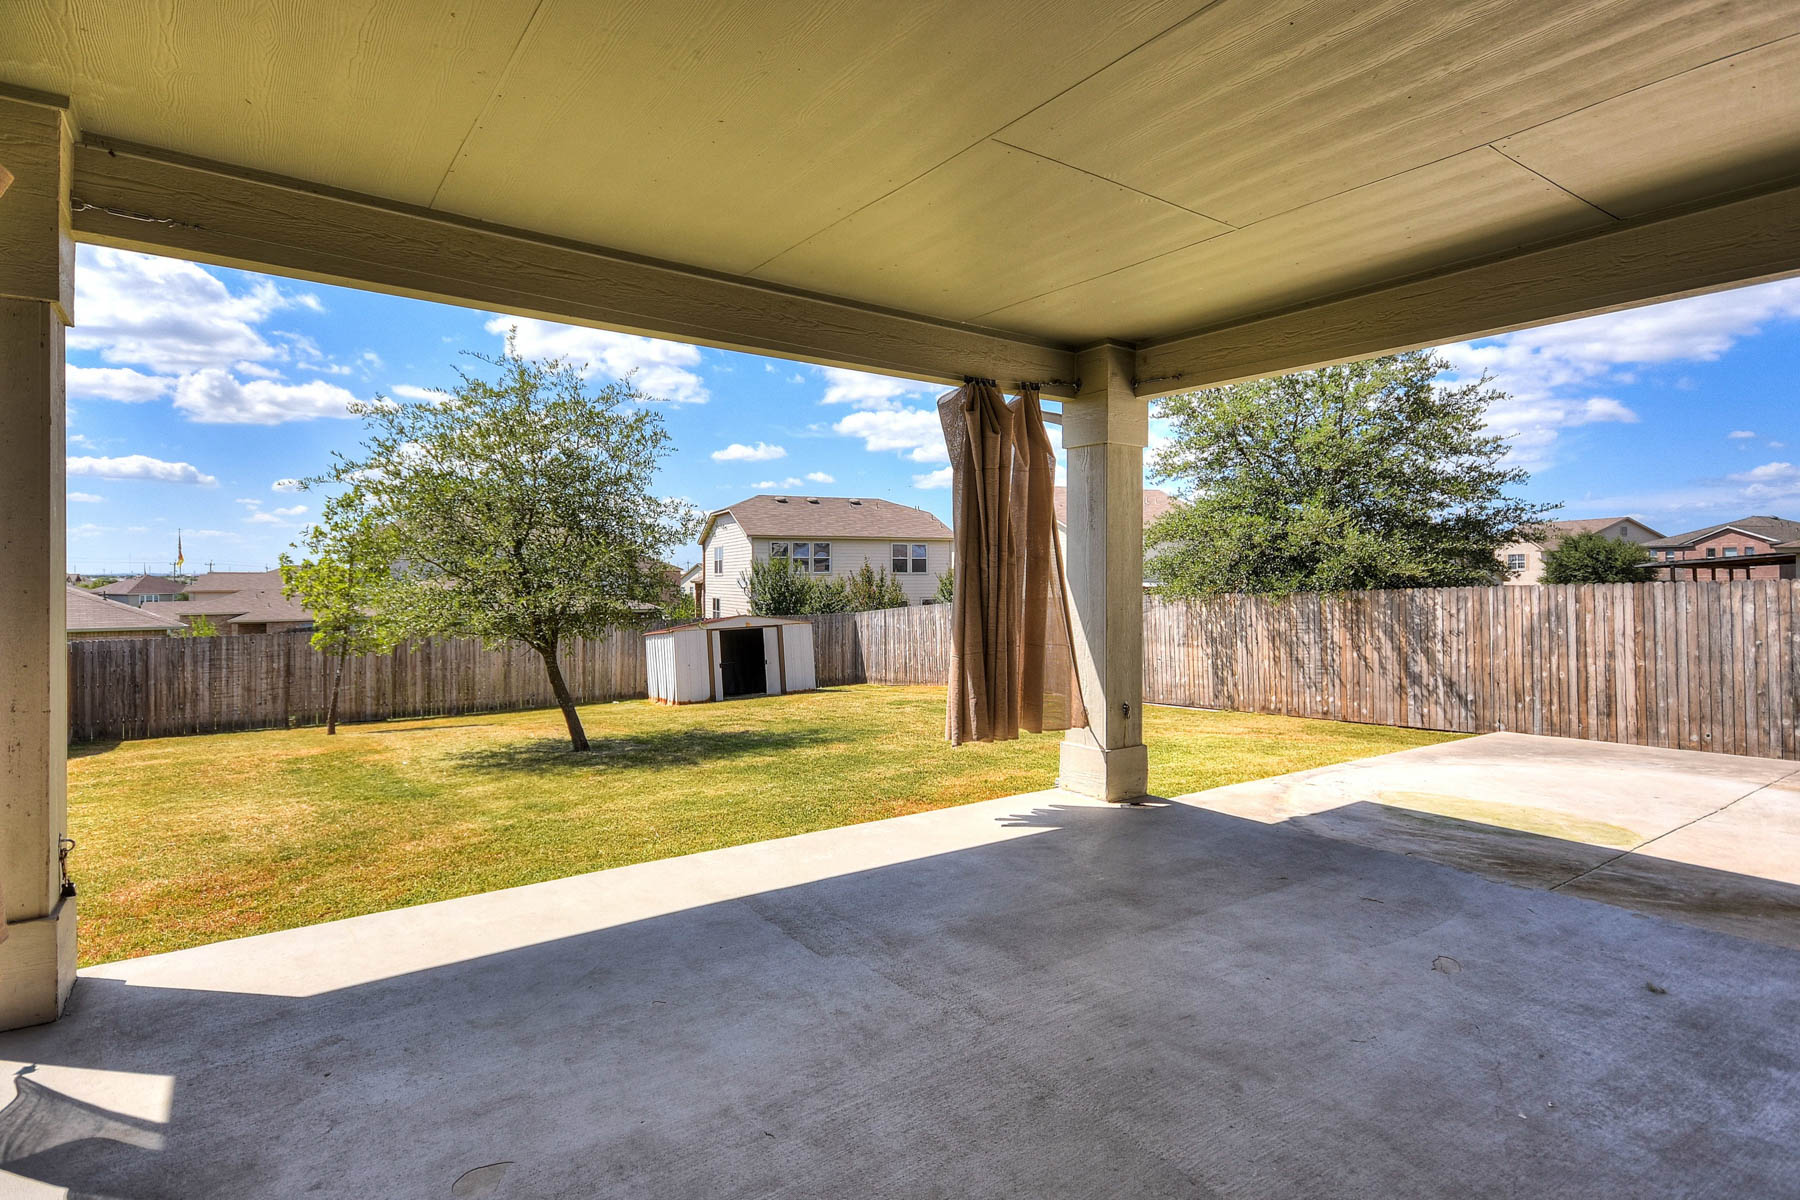 Additional photo for property listing at Lovely Maintained Home in Highland Farms 4919 Larkhill Farm San Antonio, Texas 78244 Estados Unidos